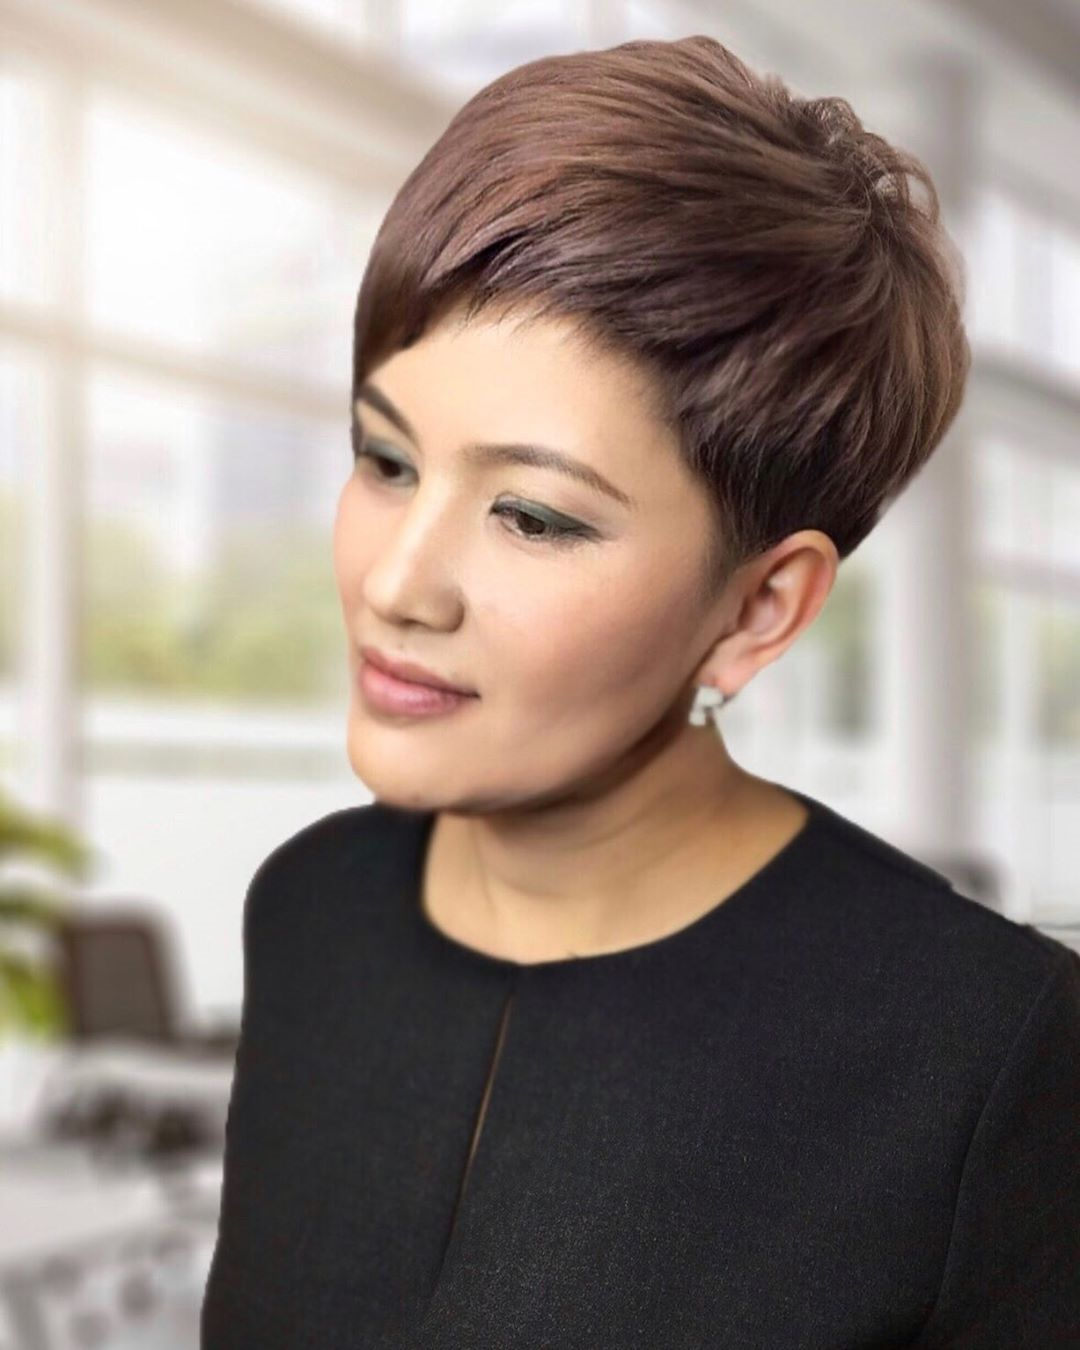 Cool Pixie Haircuts To Inspire Your Next Haircut In 2020-26